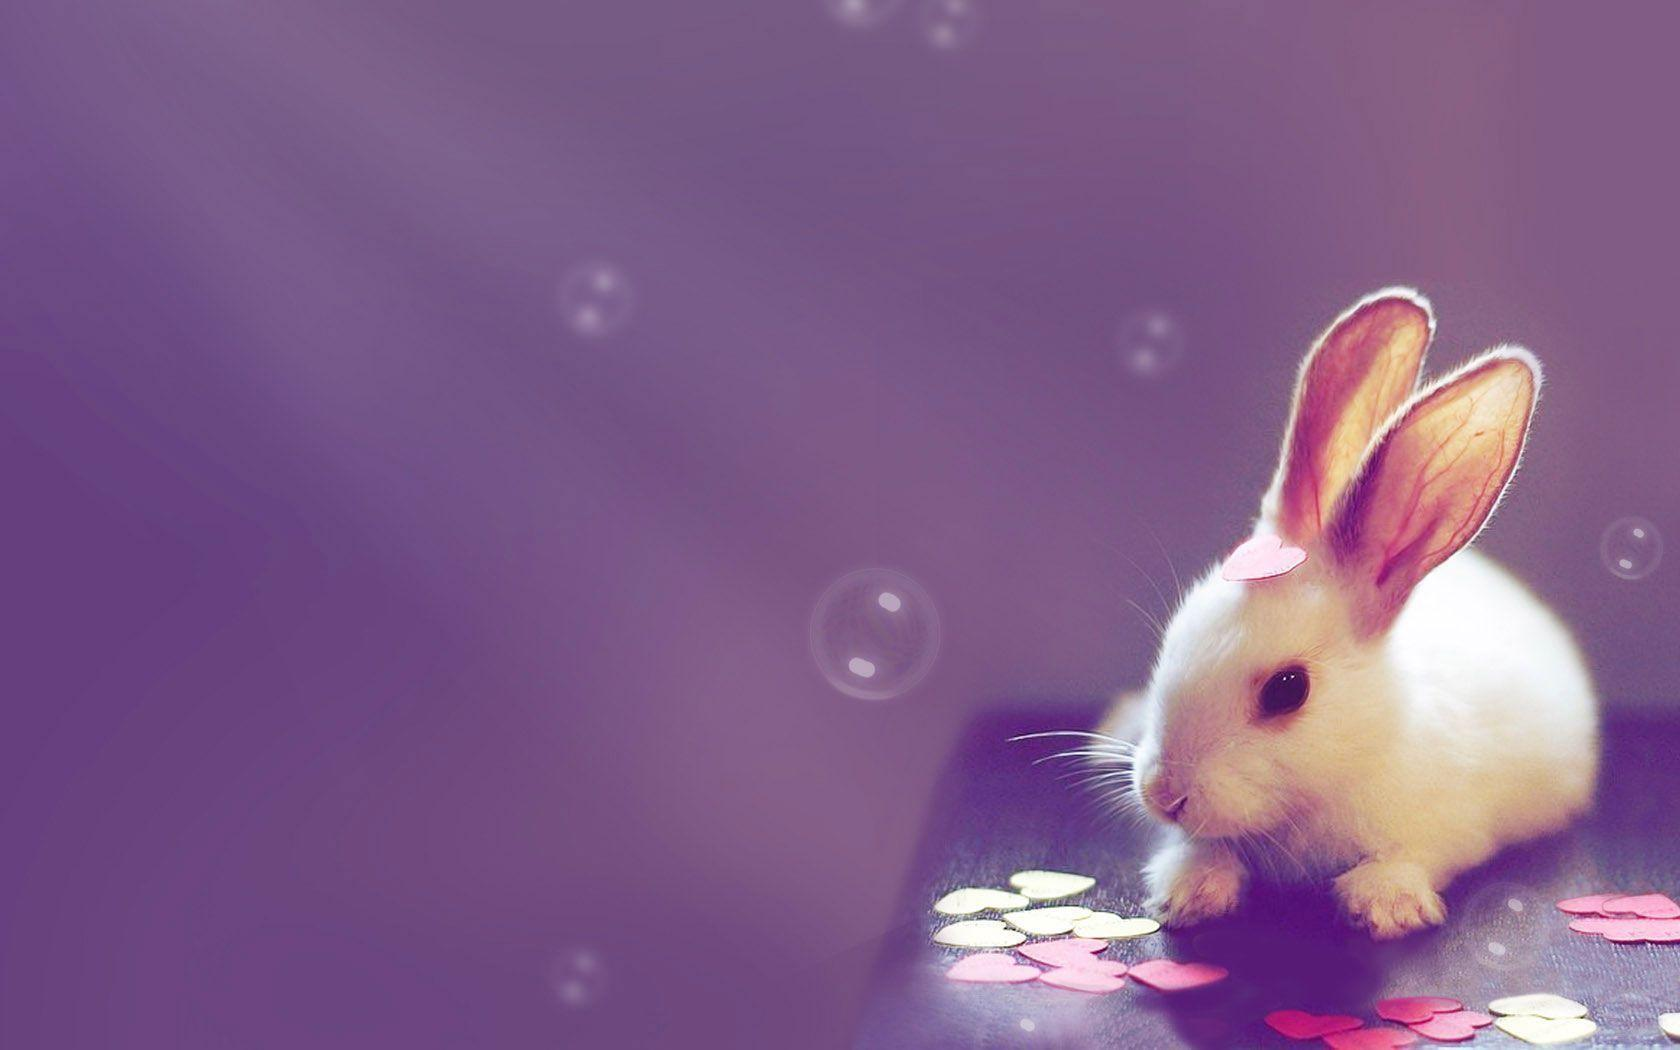 Wallpapers For > Cute Rabbit Wallpapers For Desktop